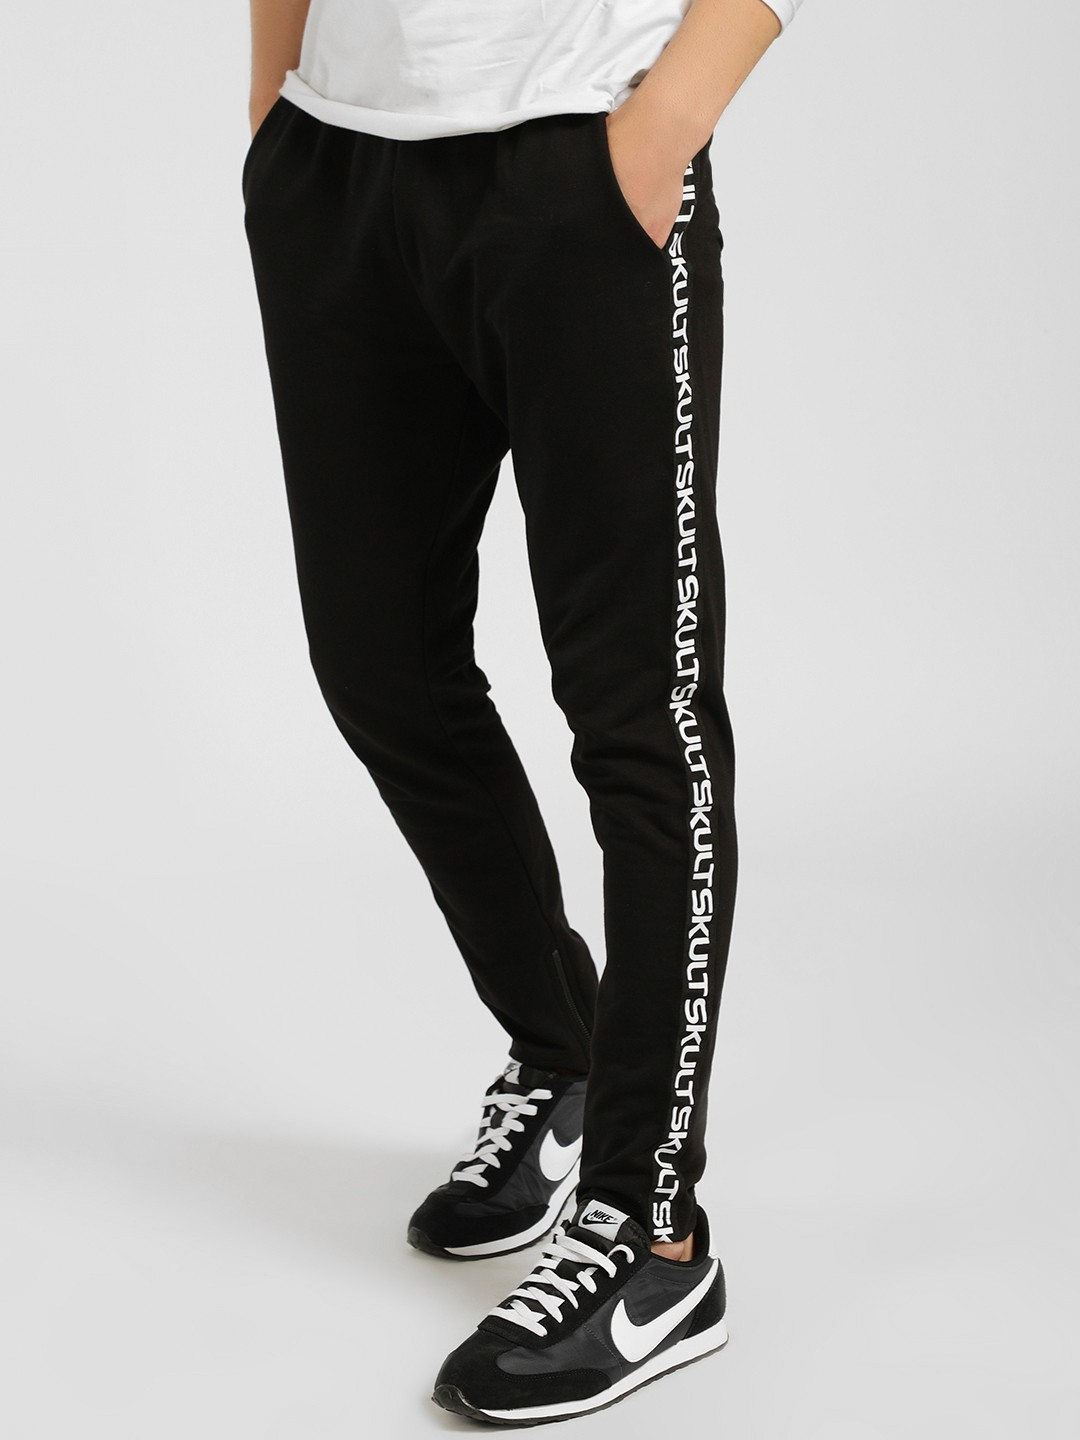 SKULT By Shahid Kapoor Black Text Side Tape Joggers 1